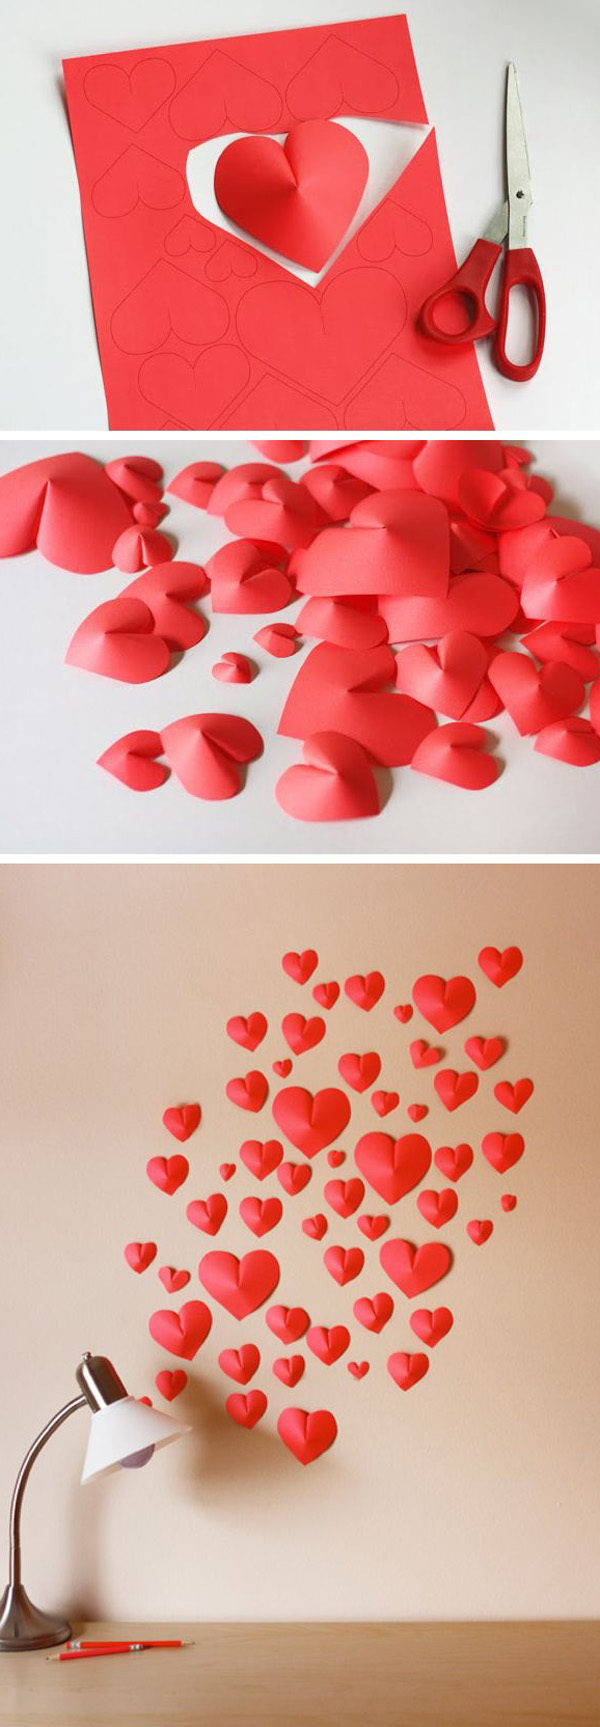 3D Paper Heart Valentine's Day Wall Decor.